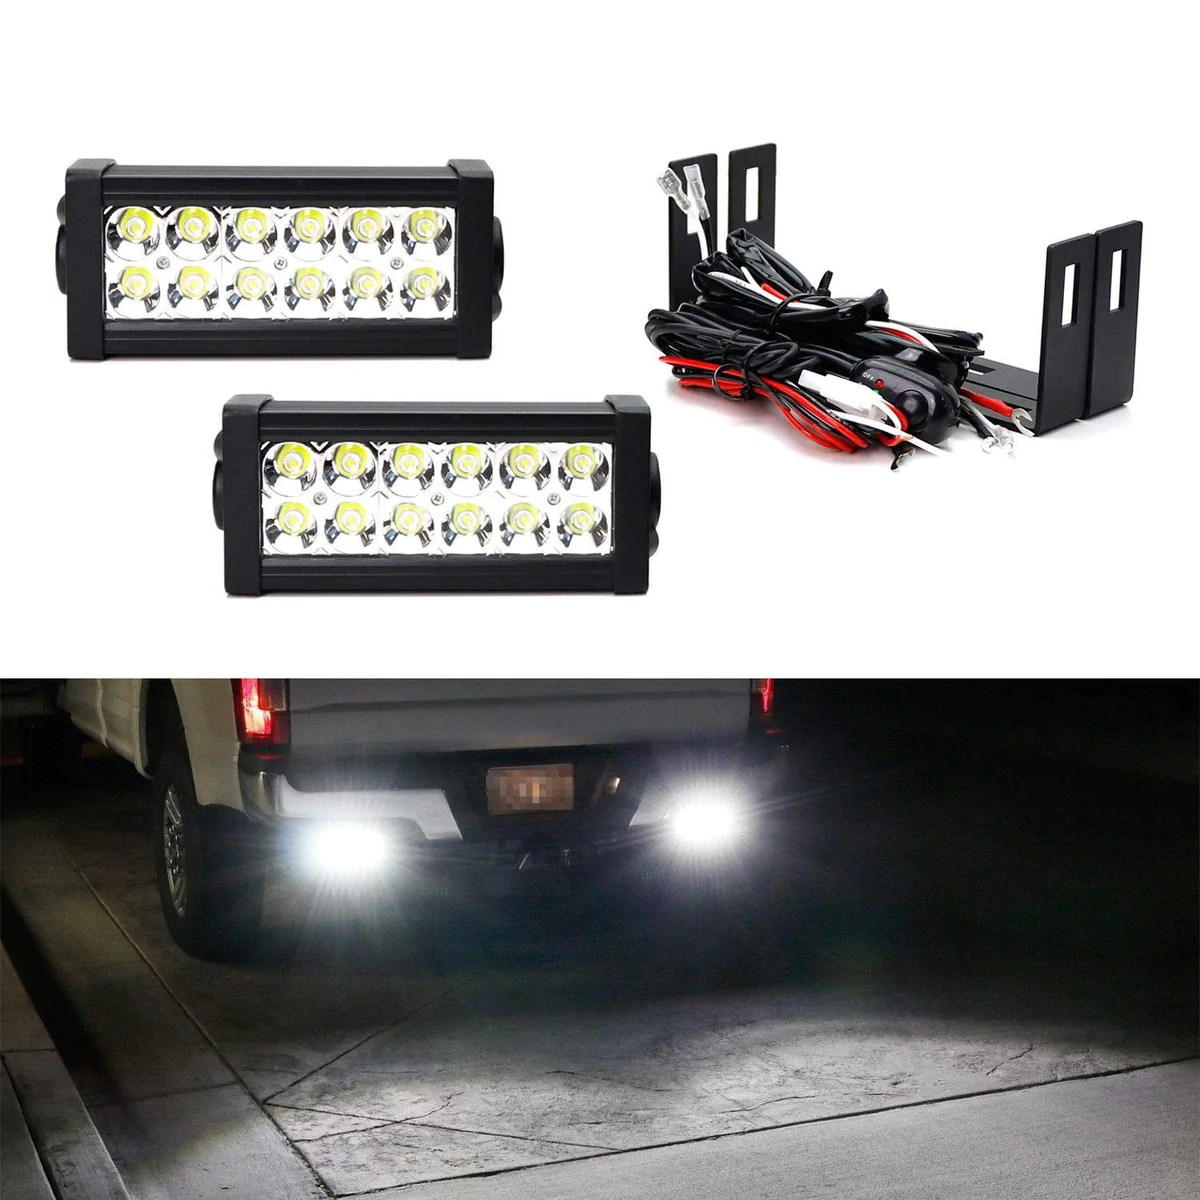 small resolution of  led light bar kit for 2012 up toyota tacoma 2014 up tundra 2 36w high power led lightbars bumper frame mounting brackets on off switch wiring